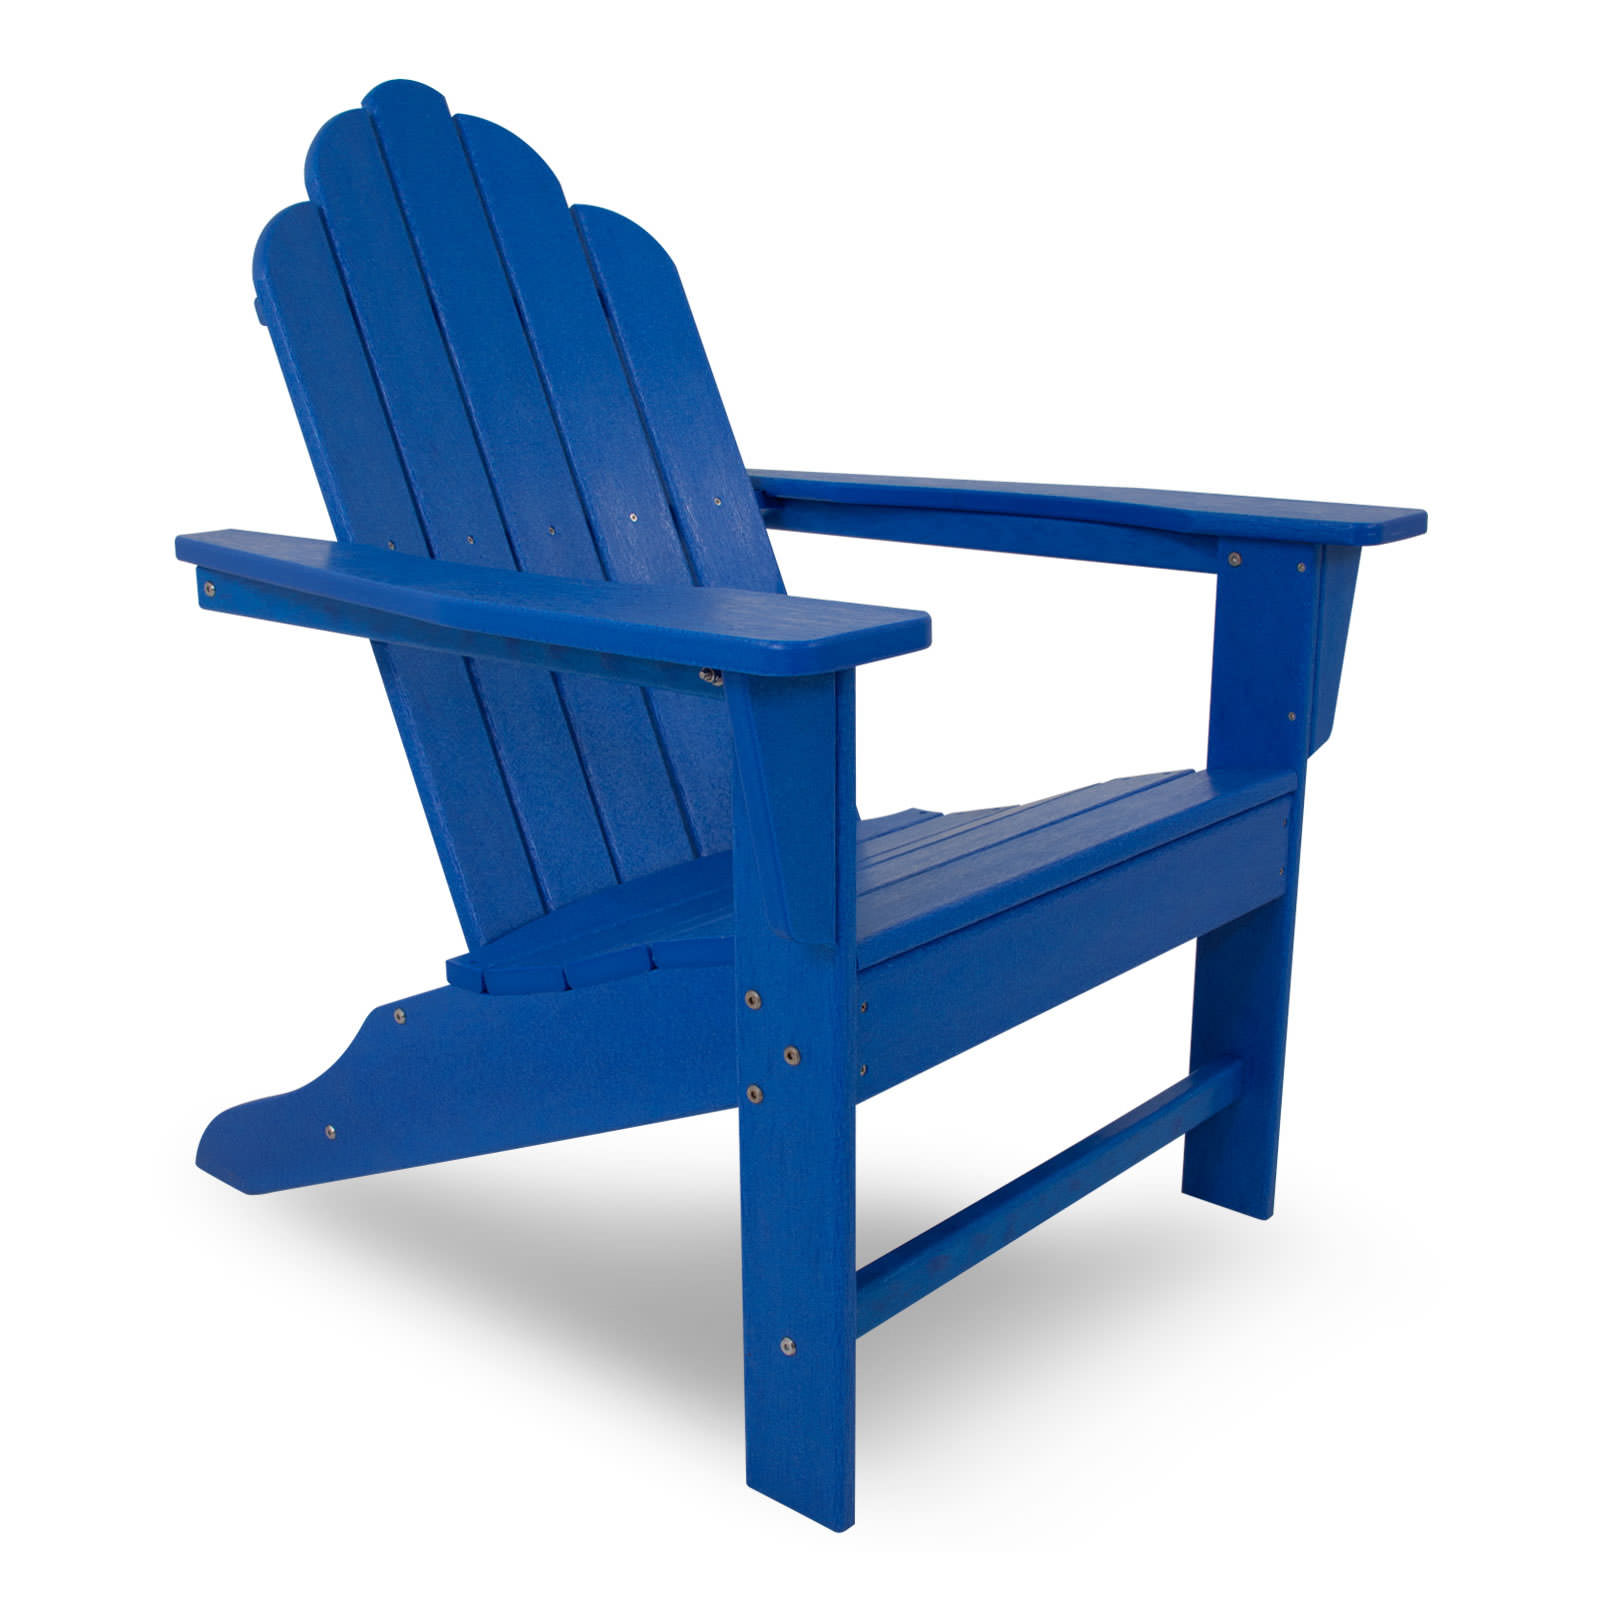 POLYWOOD Long Island Adirondack Chair Long Island POLYWOOD